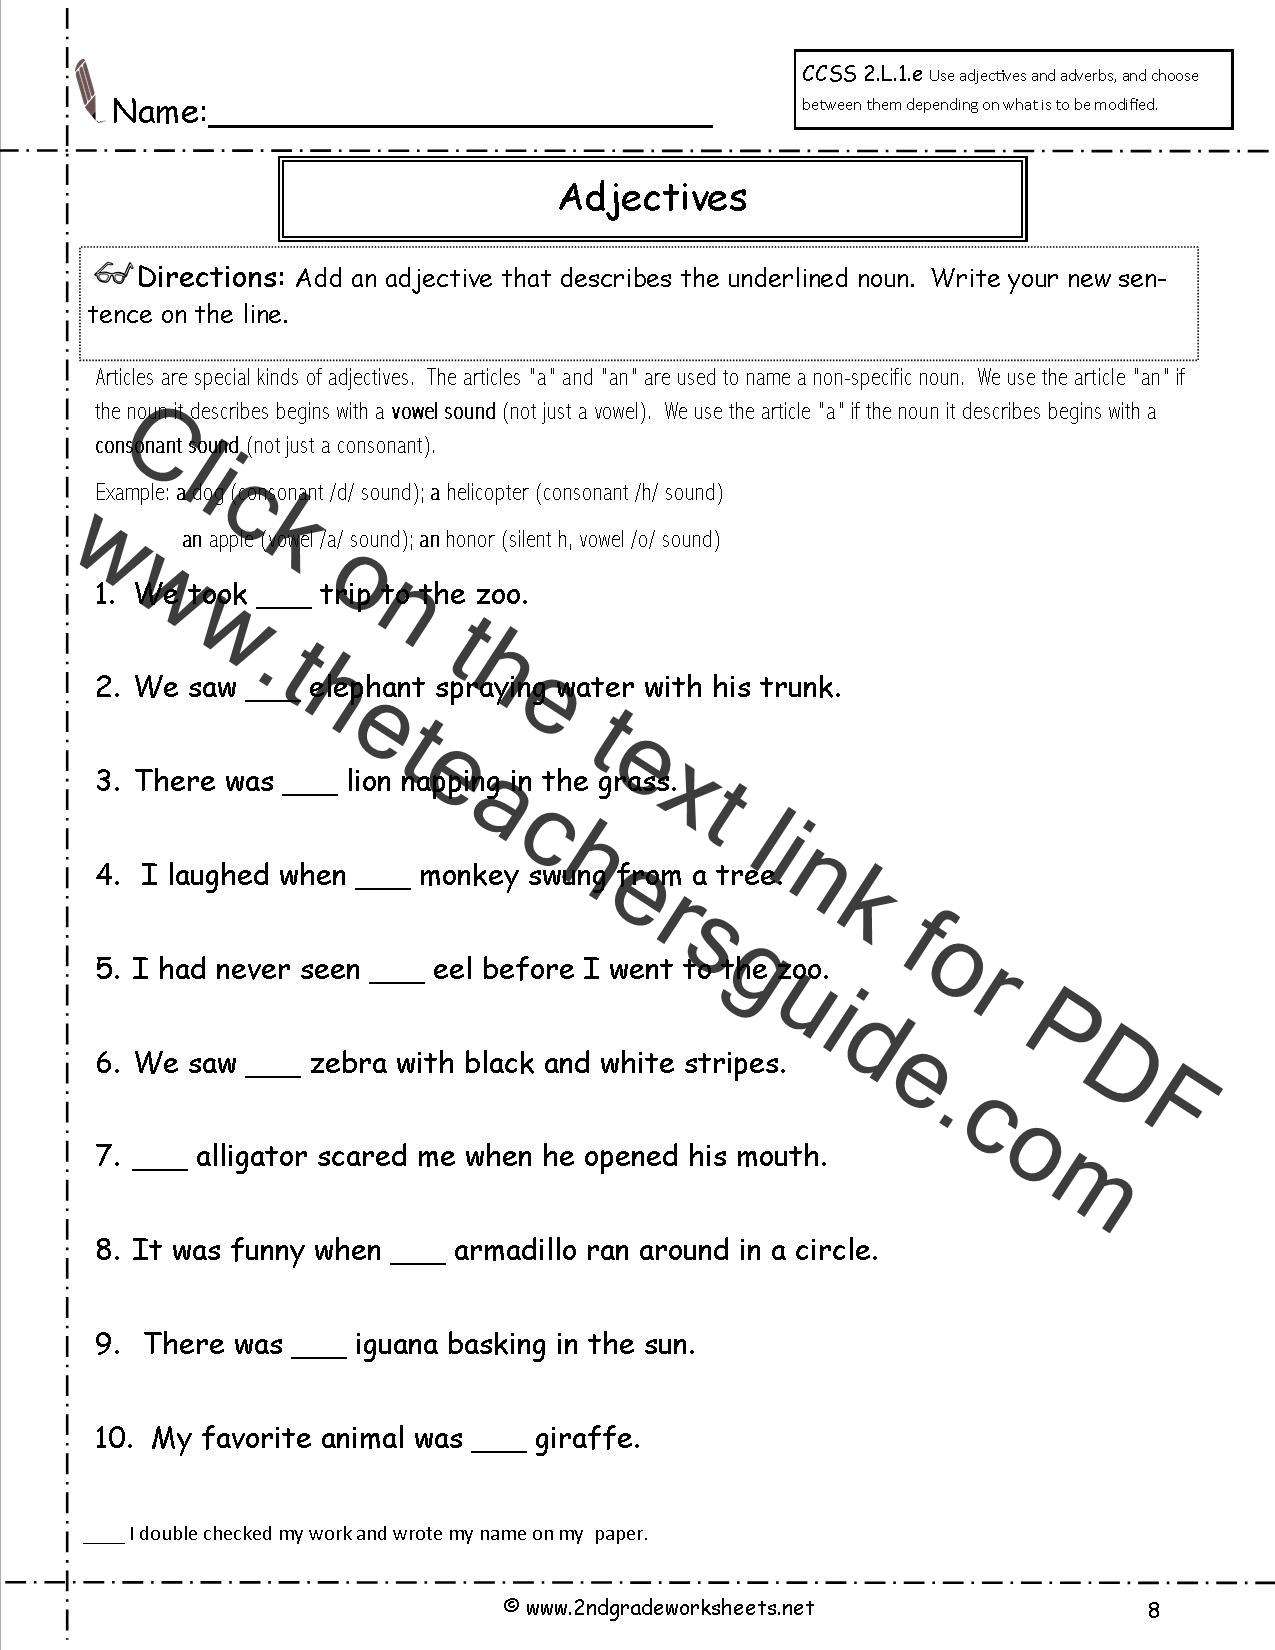 Worksheet Grammar Worksheets For 2nd Grade free languagegrammar worksheets and printouts adjectives worksheets